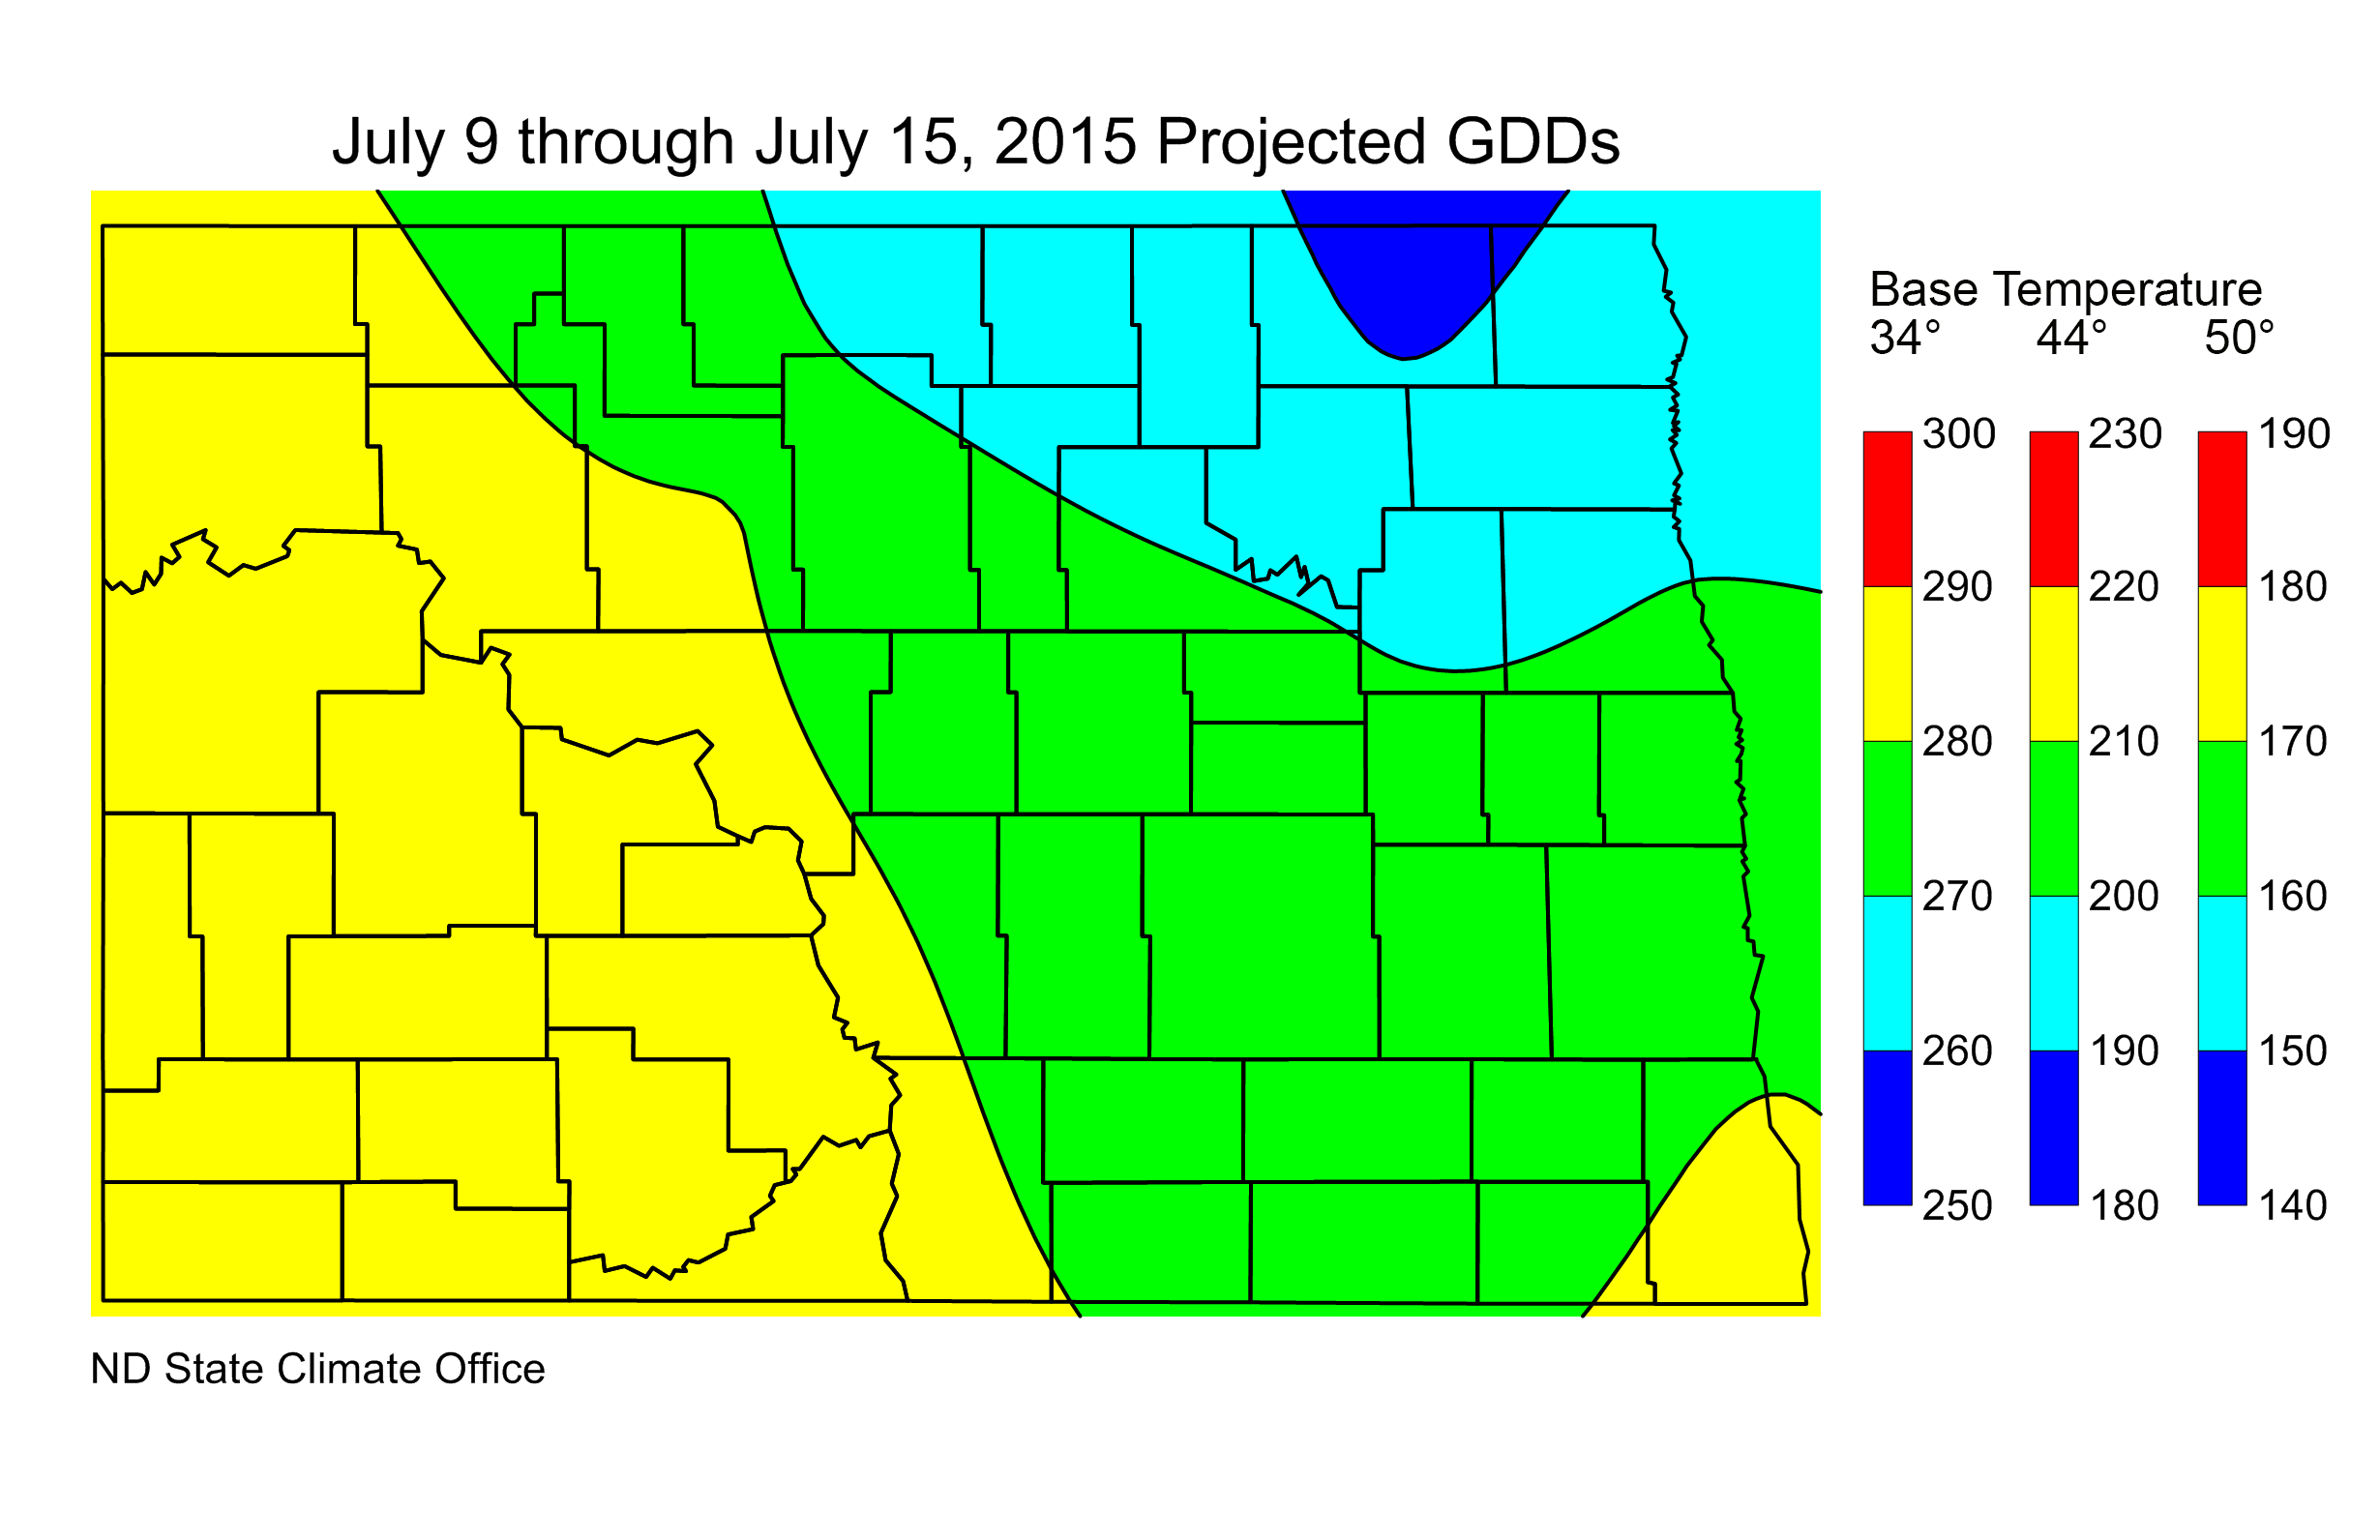 Figure 3.  Projected Growing Degree Days (units) from July 9-15, 2015